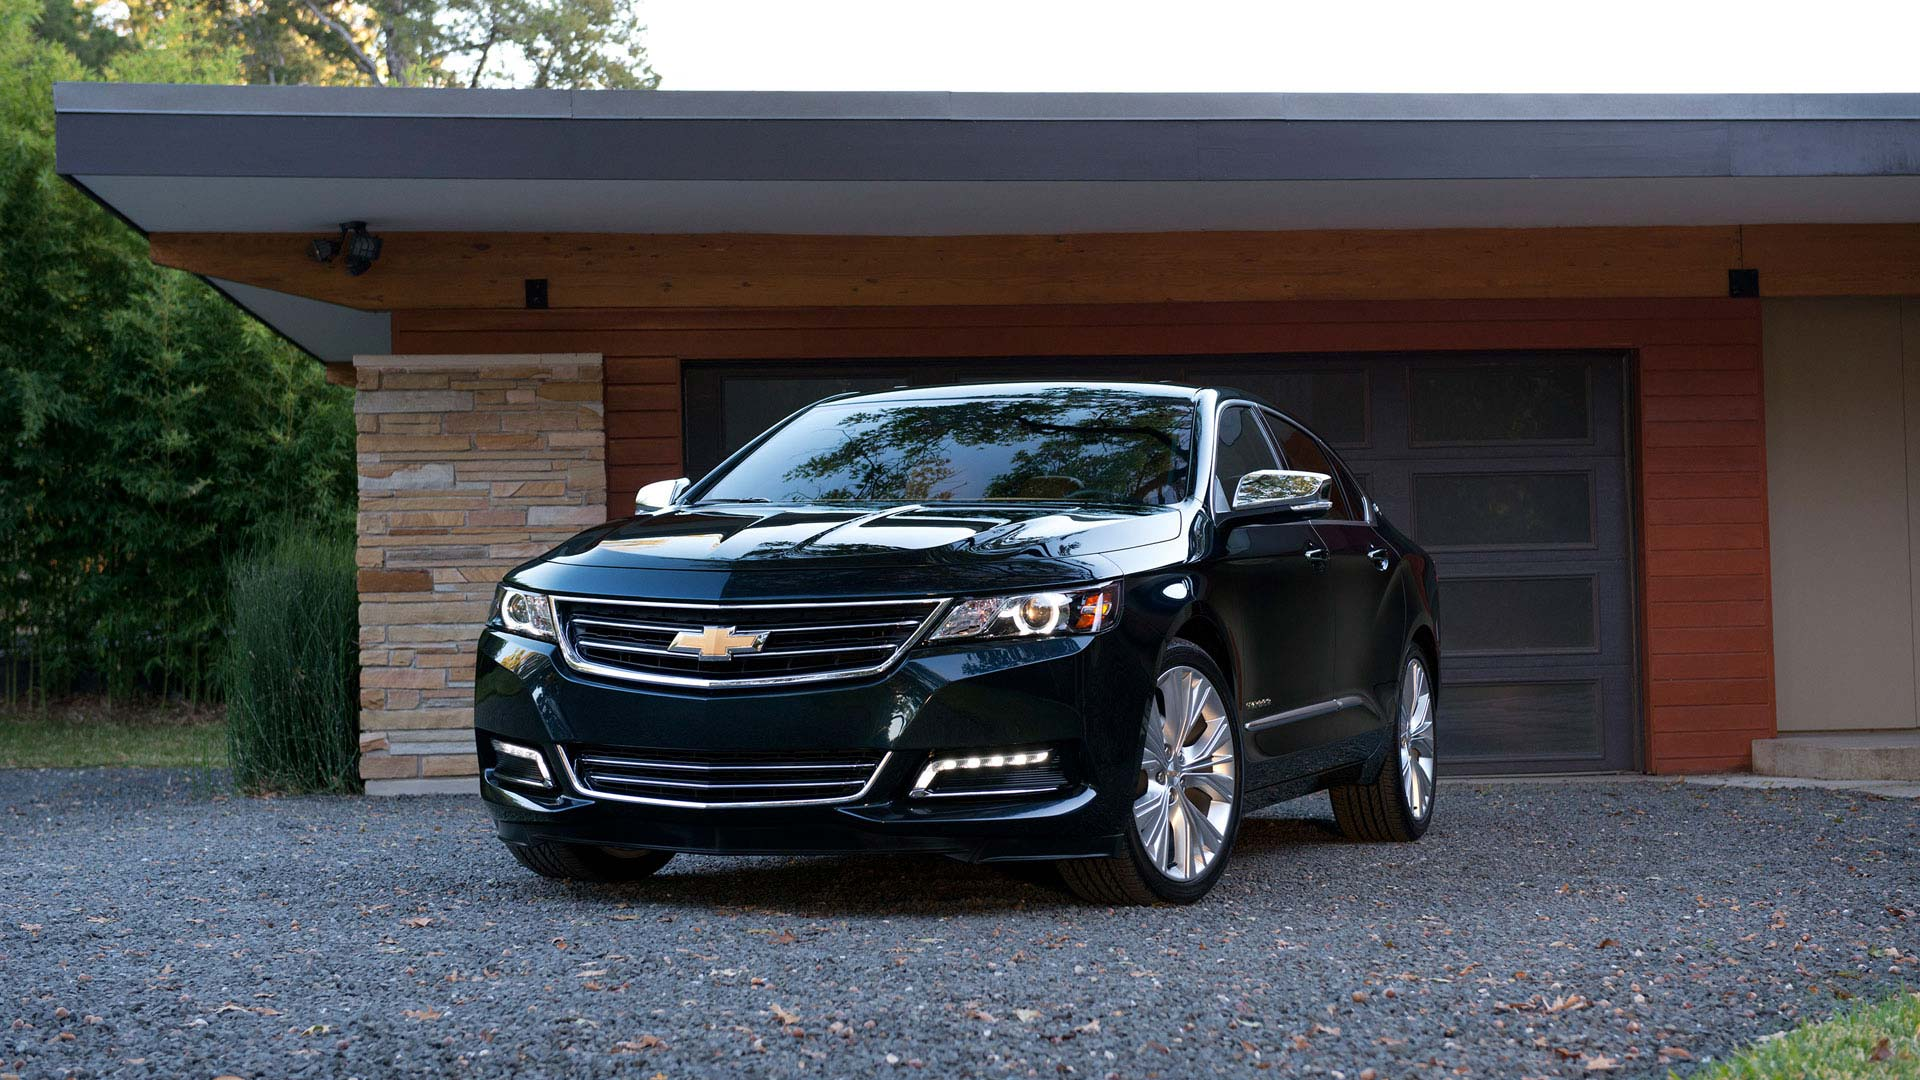 2016 Chevrolet Impala Cng 3Lt >> The 2016 Chevy Impala